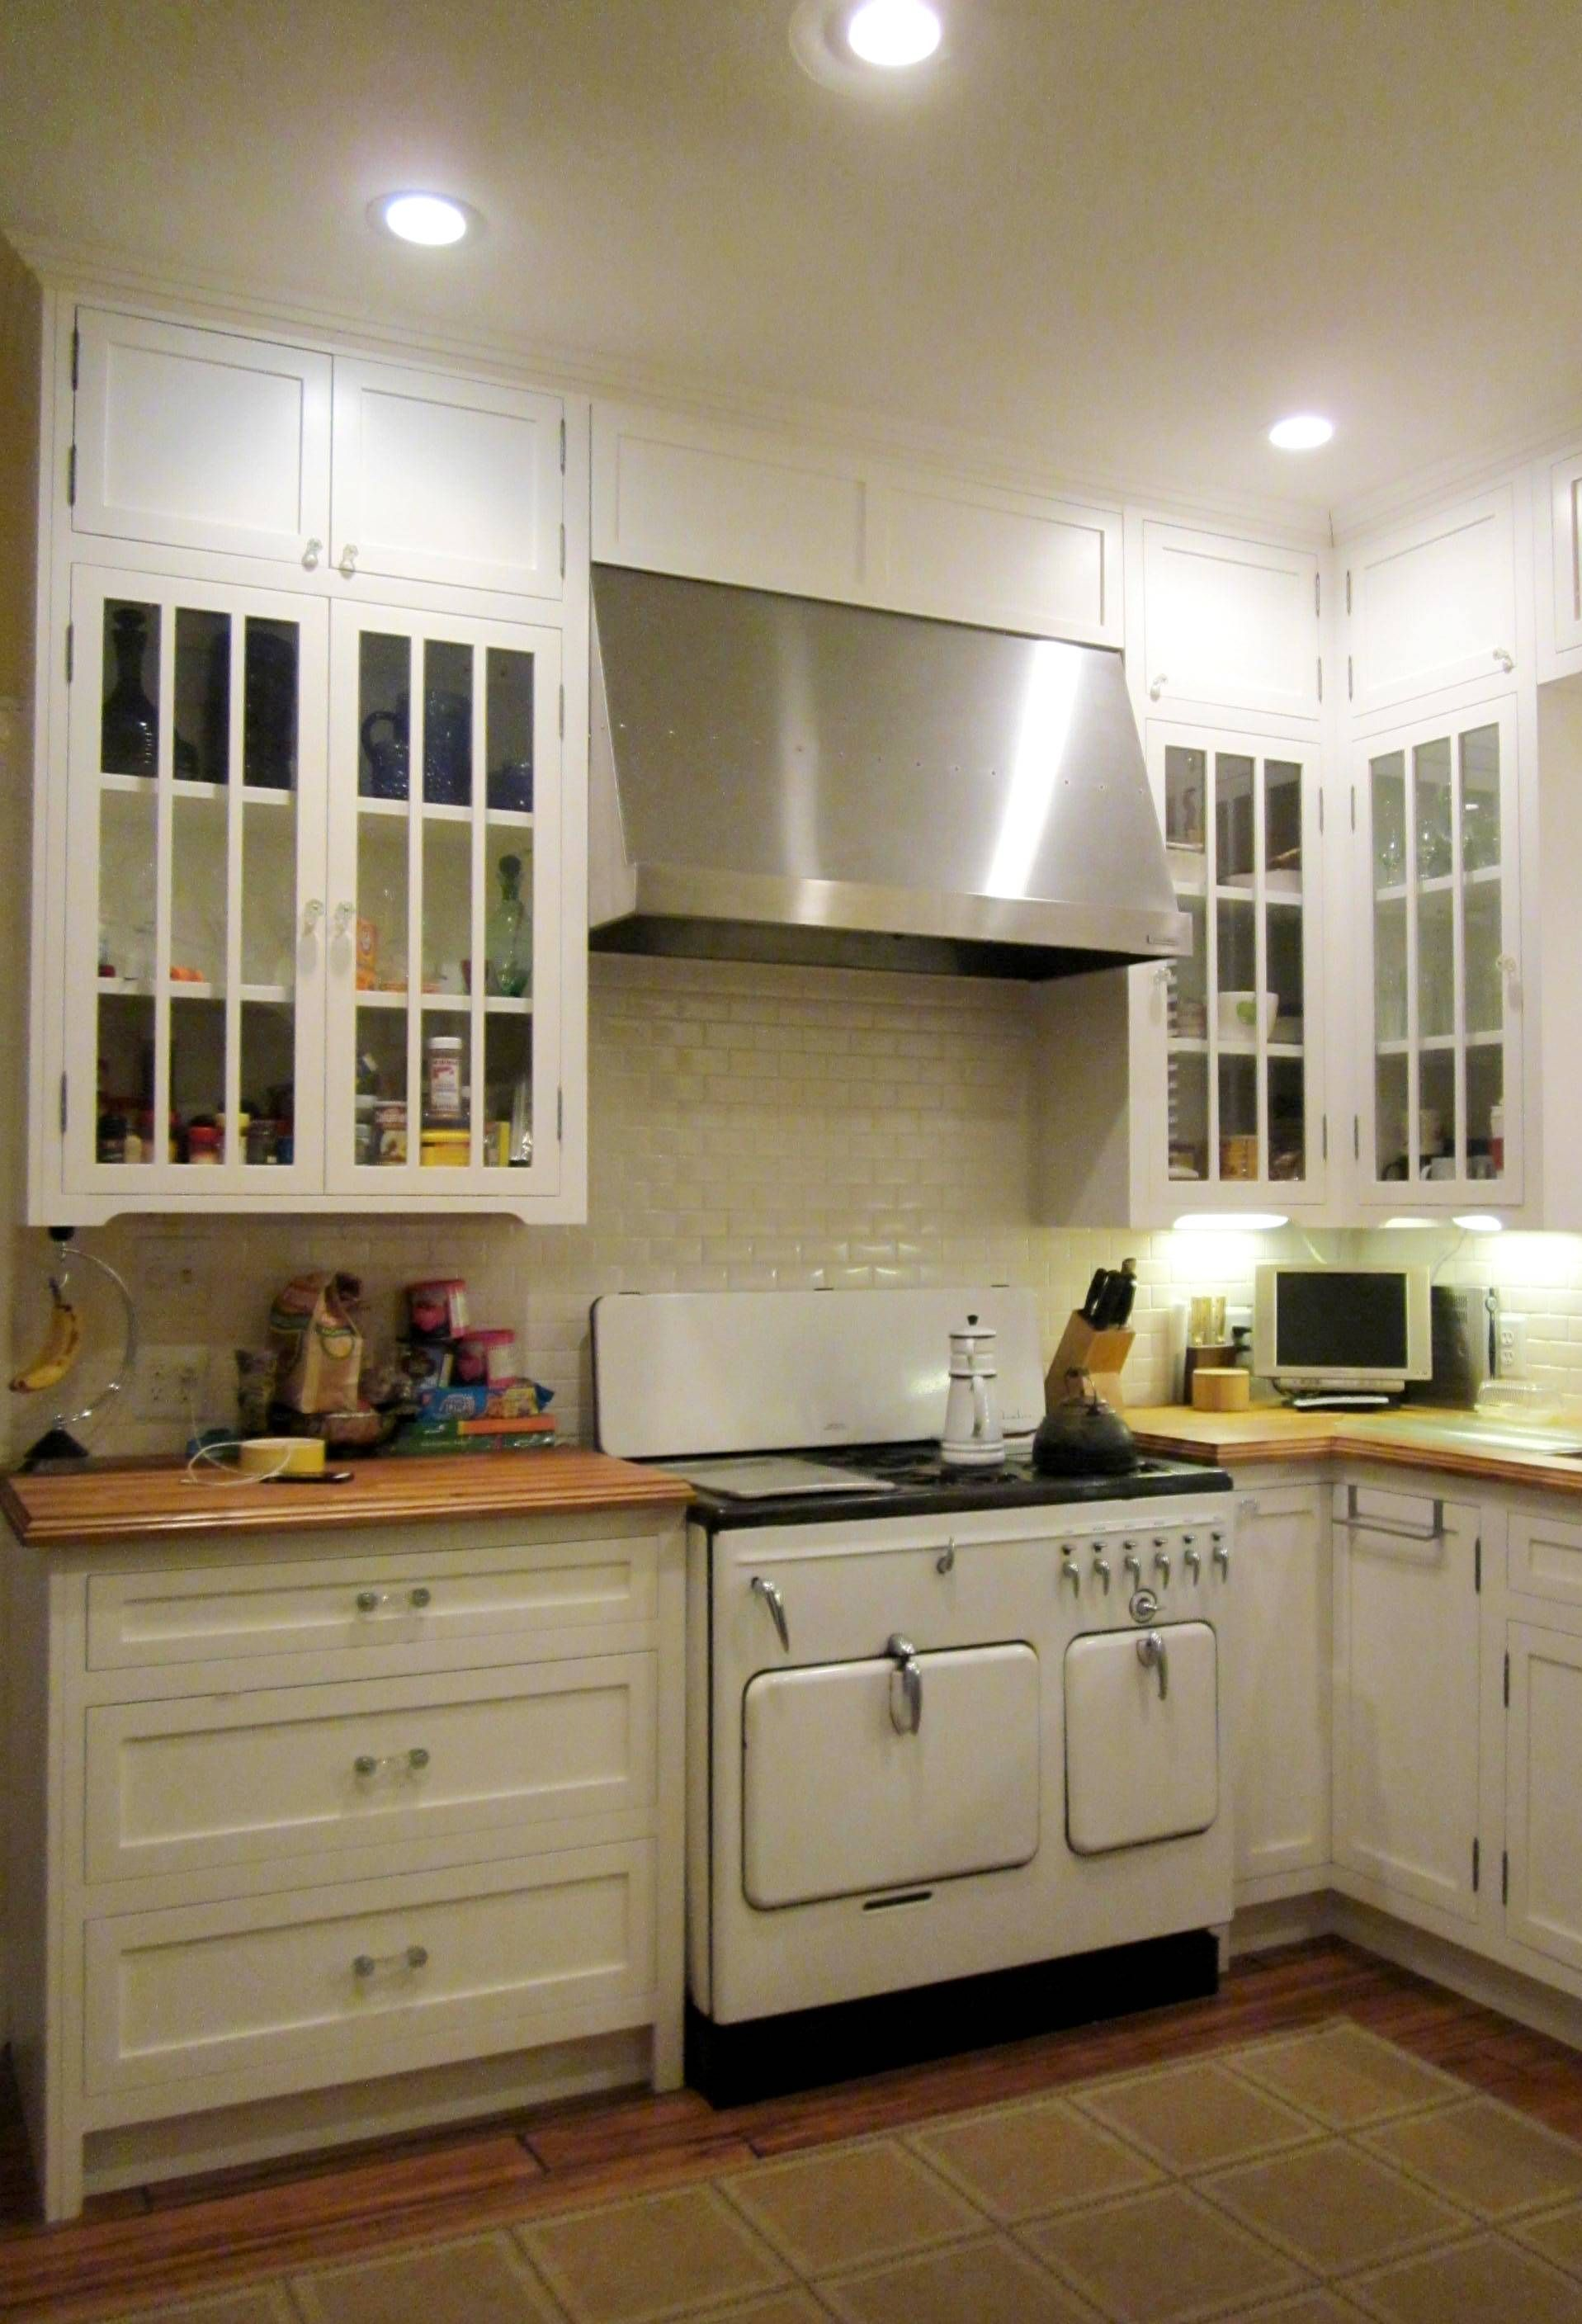 1920 S Period Style Kitchen For Andre Jagot In Houston S Historic